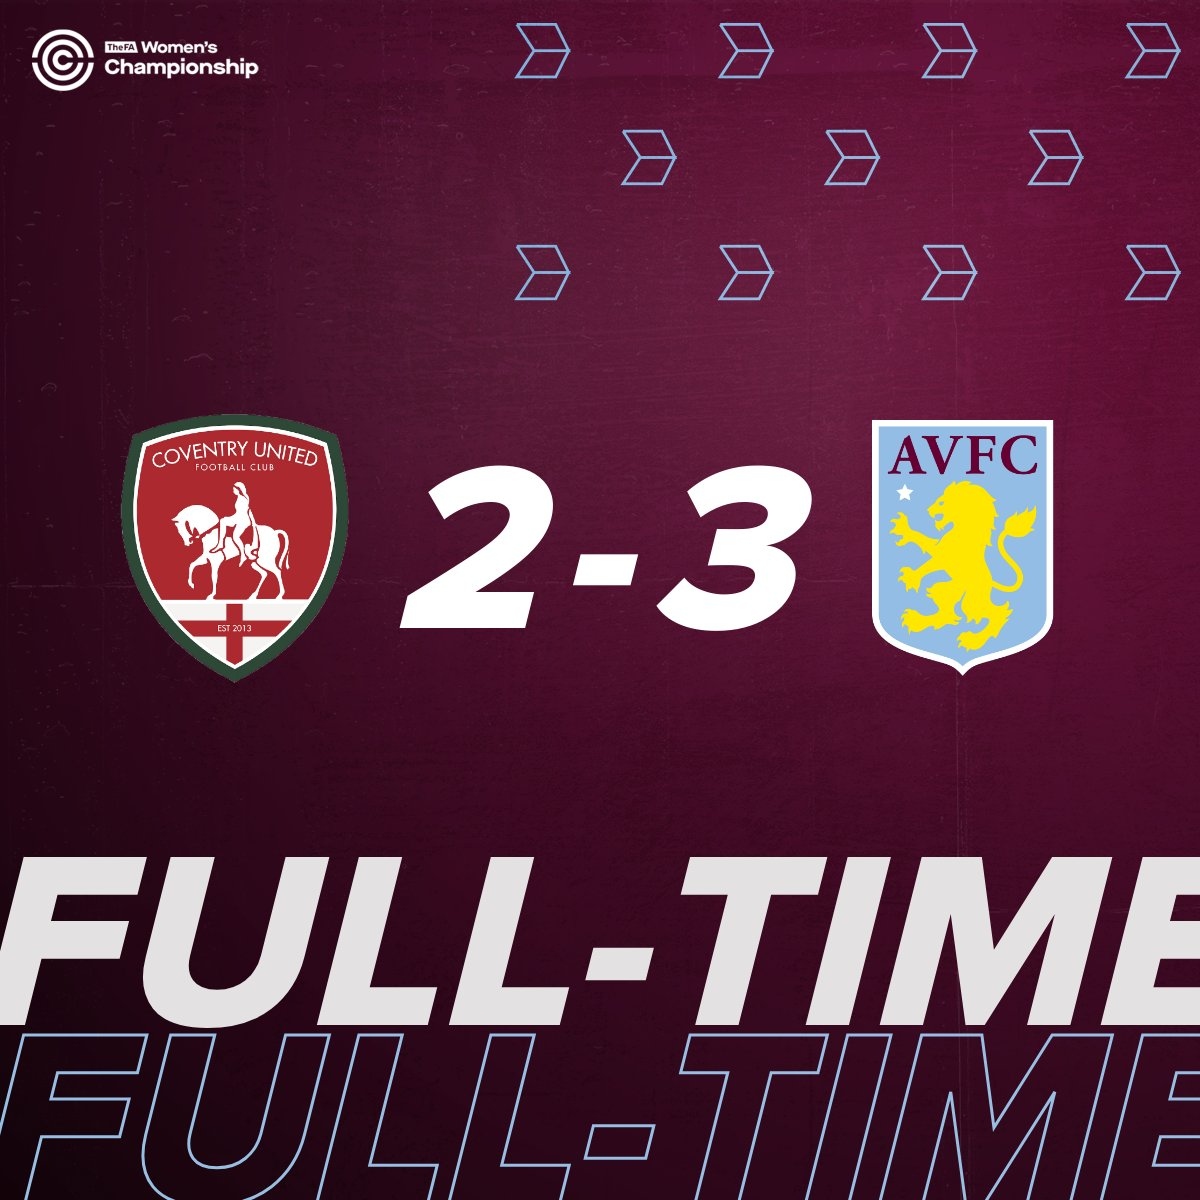 FULL-TIME Nail-biting action towards the end as Coventry push on for an equaliser but three goals from Villa in the first half help secure three points 👊 🔴 2-3 🦁 #SeeUsRoar #UTV #AVFC